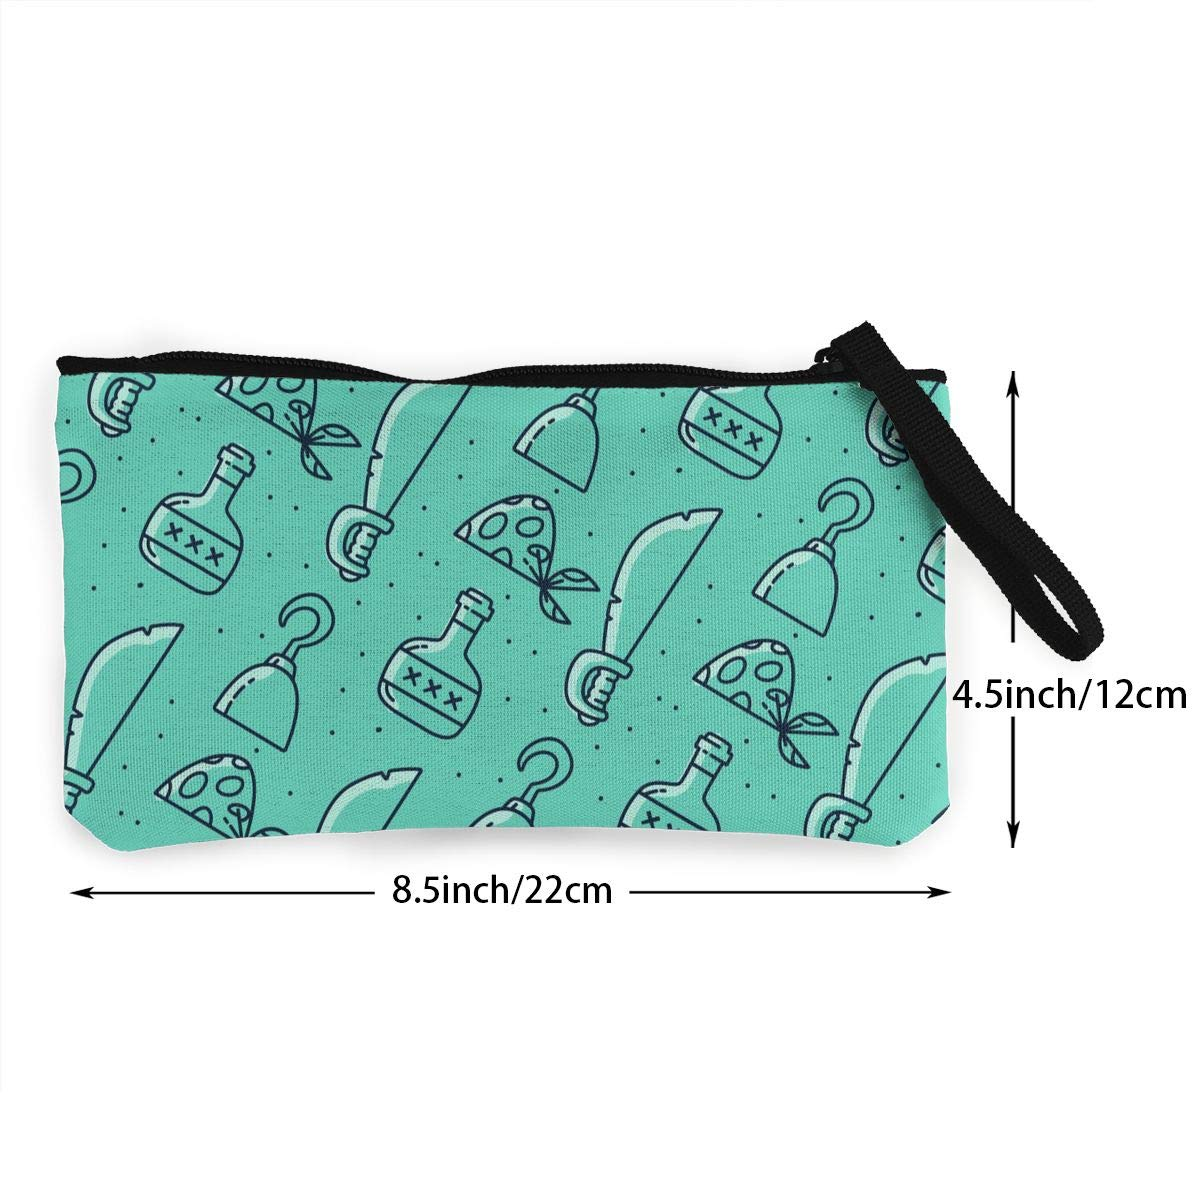 Coin Pouch Blue Pattern With Pirate Elements Canvas Coin Purse Cellphone Card Bag With Handle And Zipper